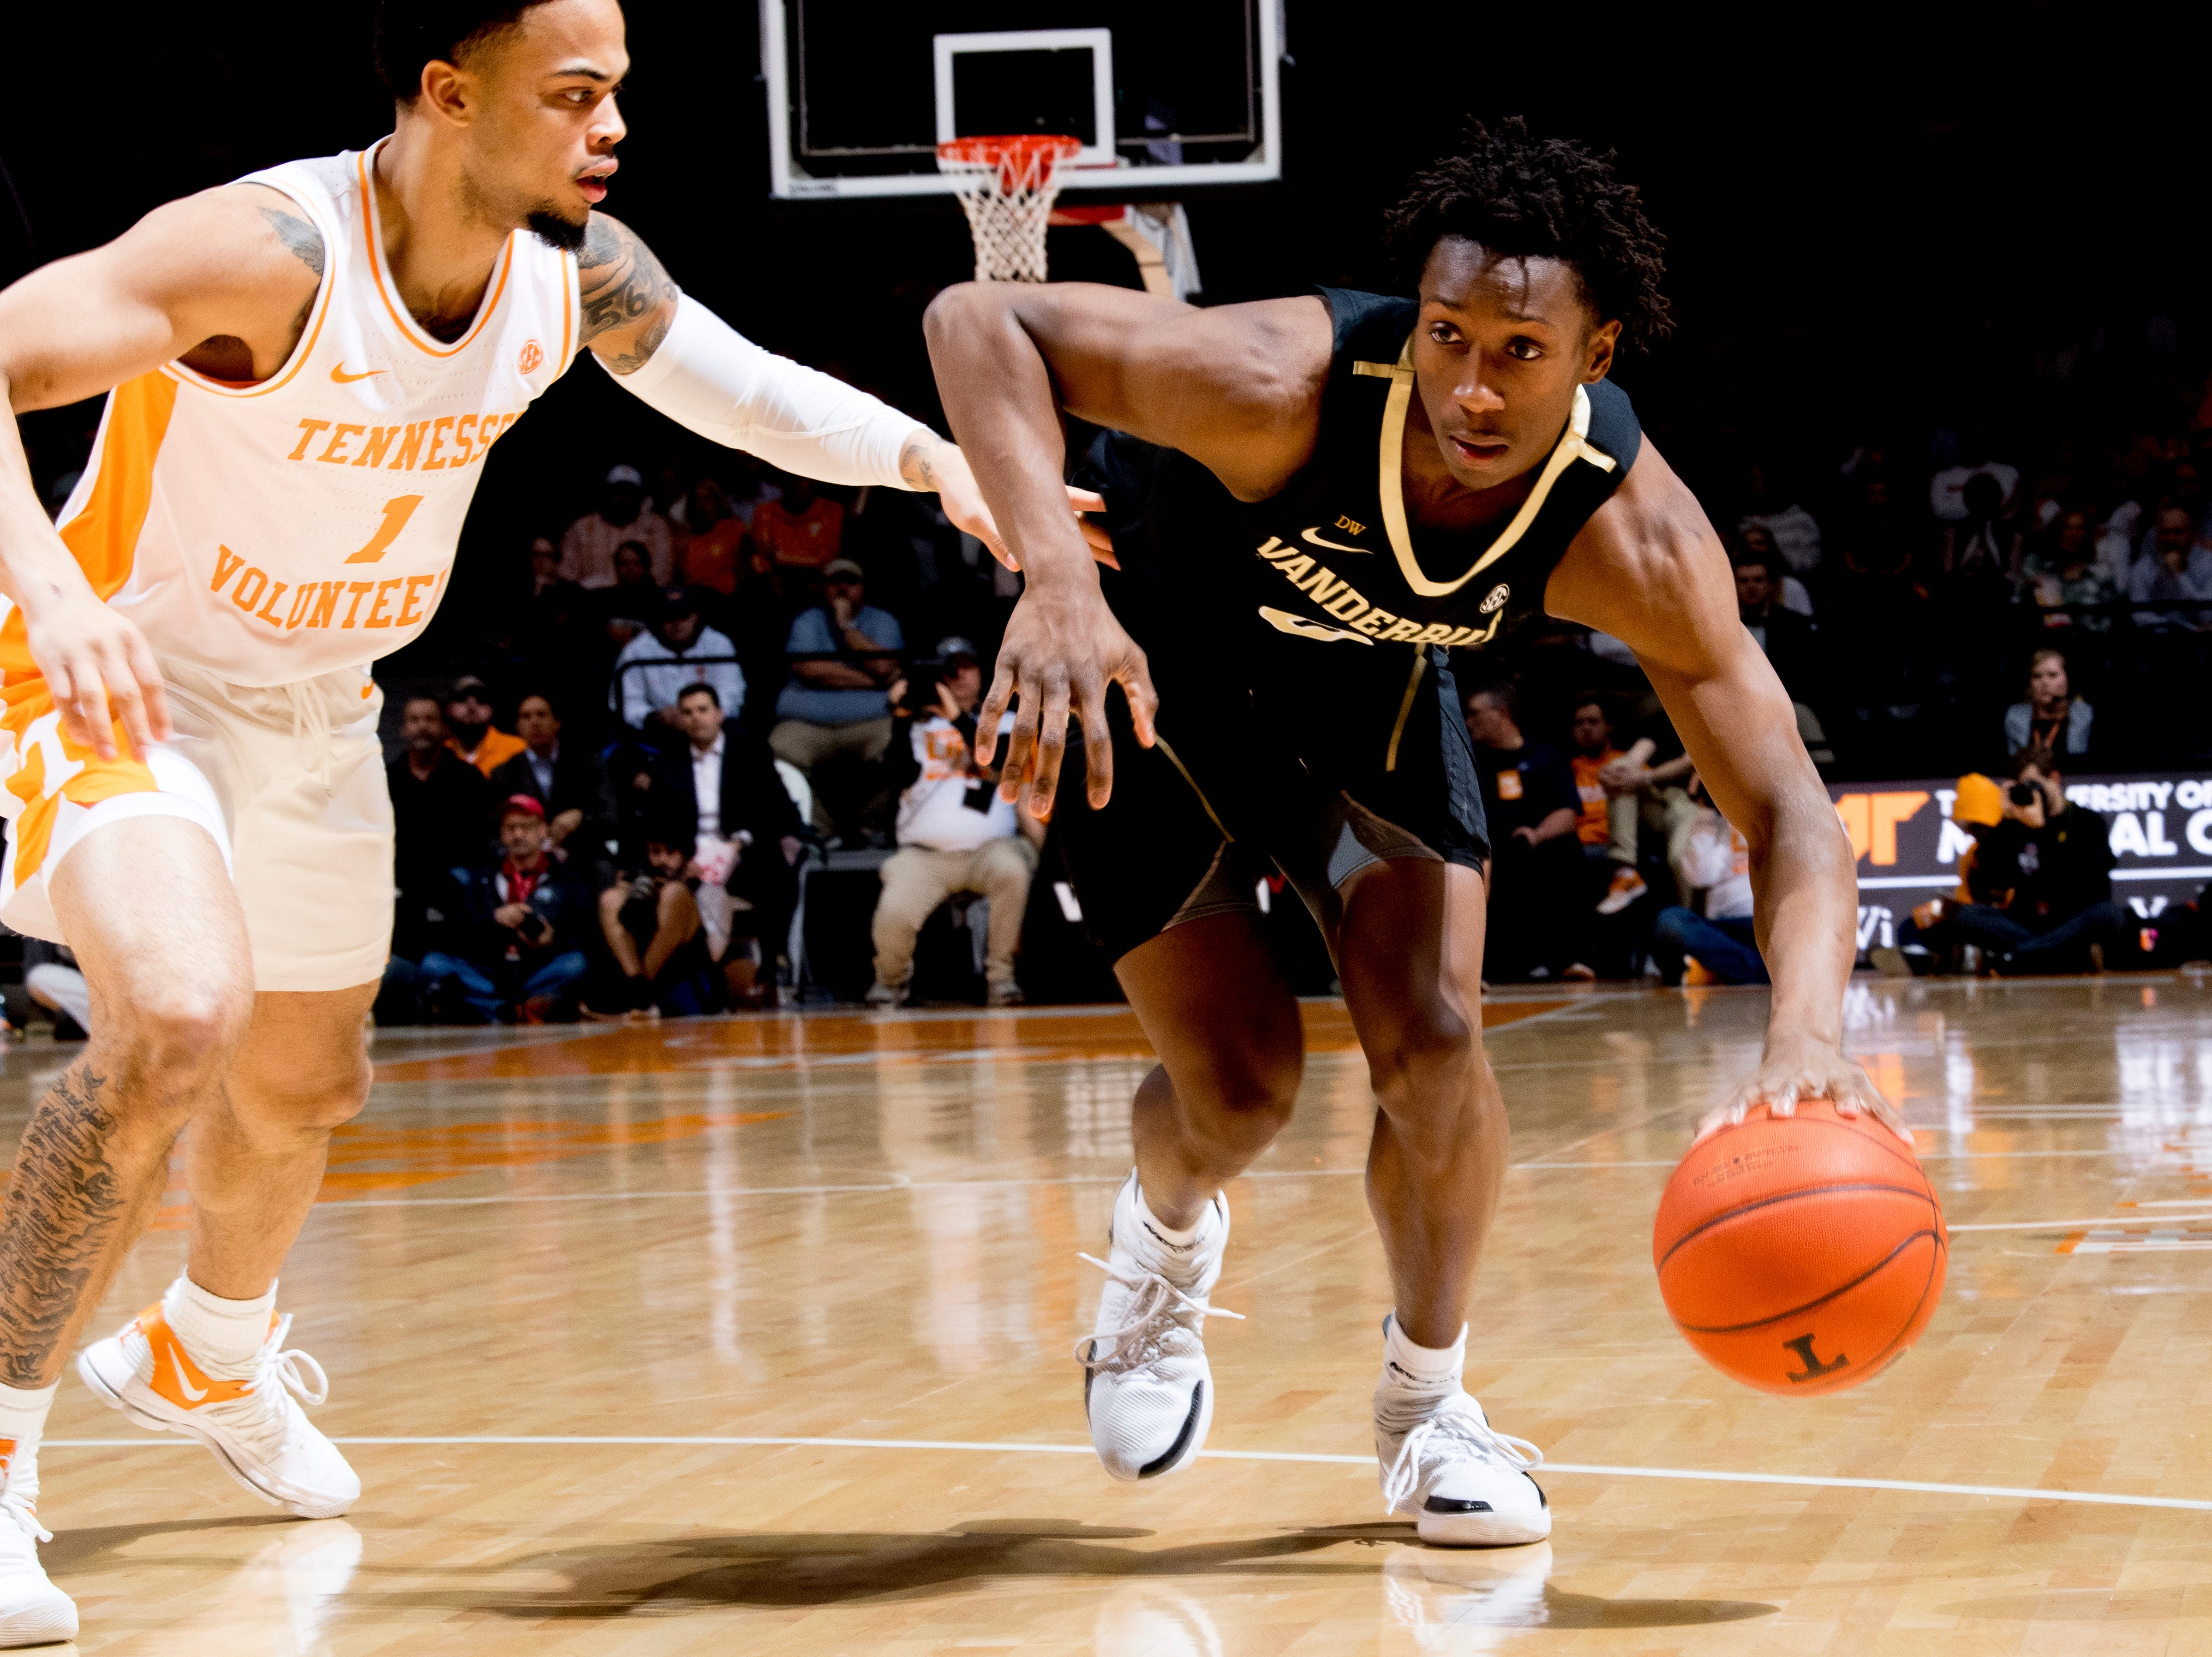 Vanderbilt guard Saben Lee (0) dribbles past Tennessee guard Lamonte Turner (1) during a game between Tennessee and Vanderbilt at Thompson-Boling Arena in Knoxville, Tennessee on Tuesday, February 19, 2019.